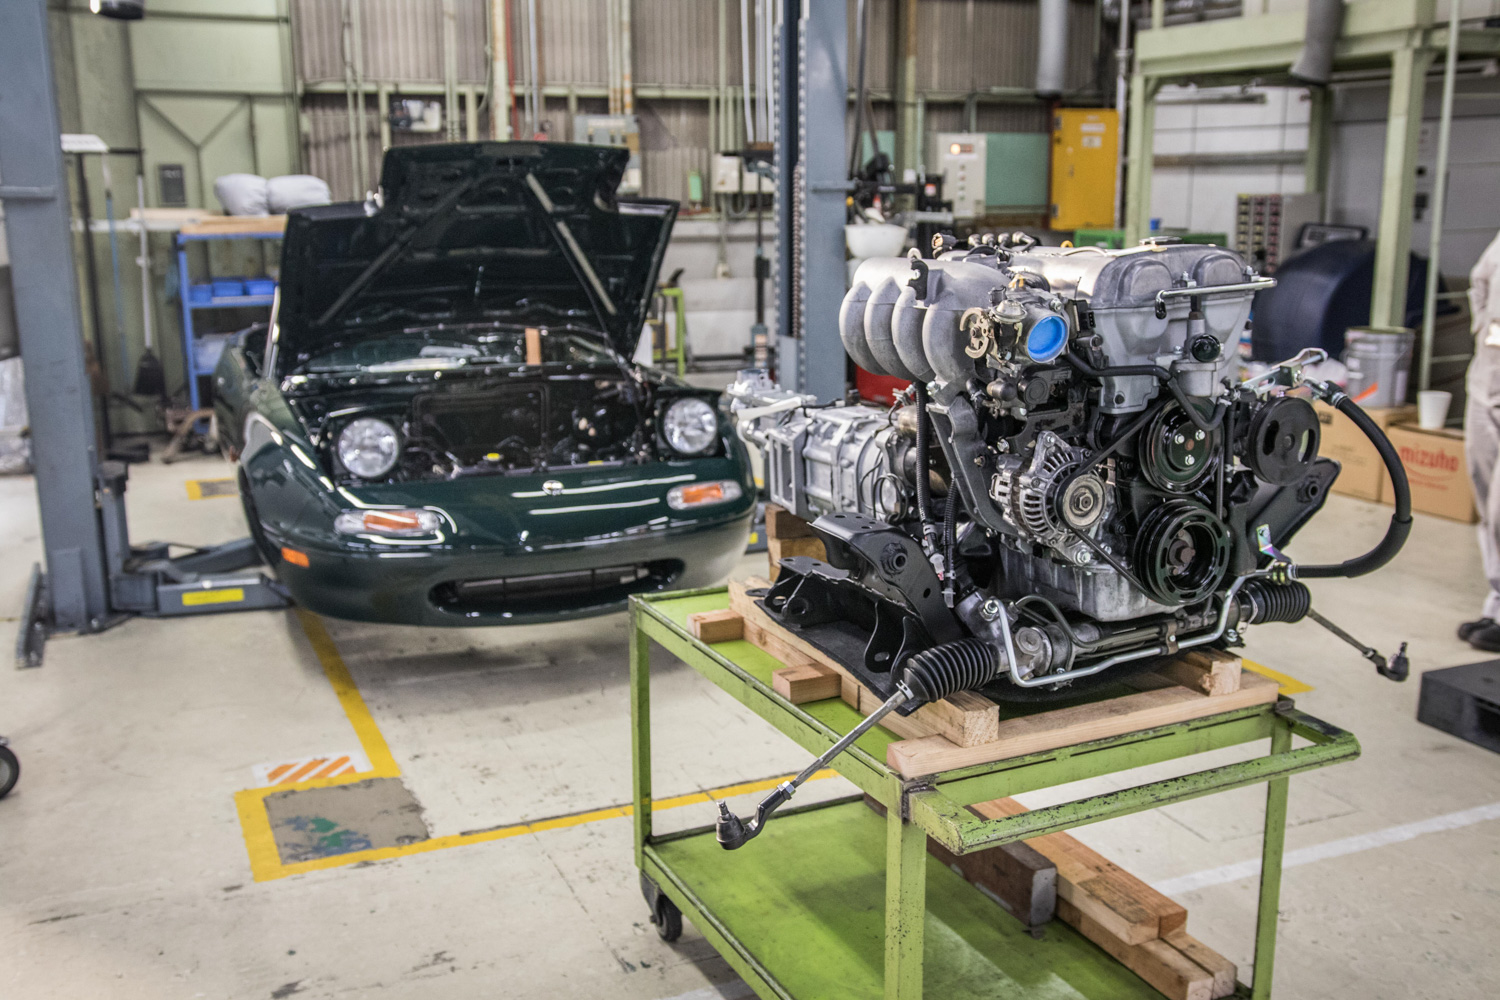 NA miata restoration engine out on stand